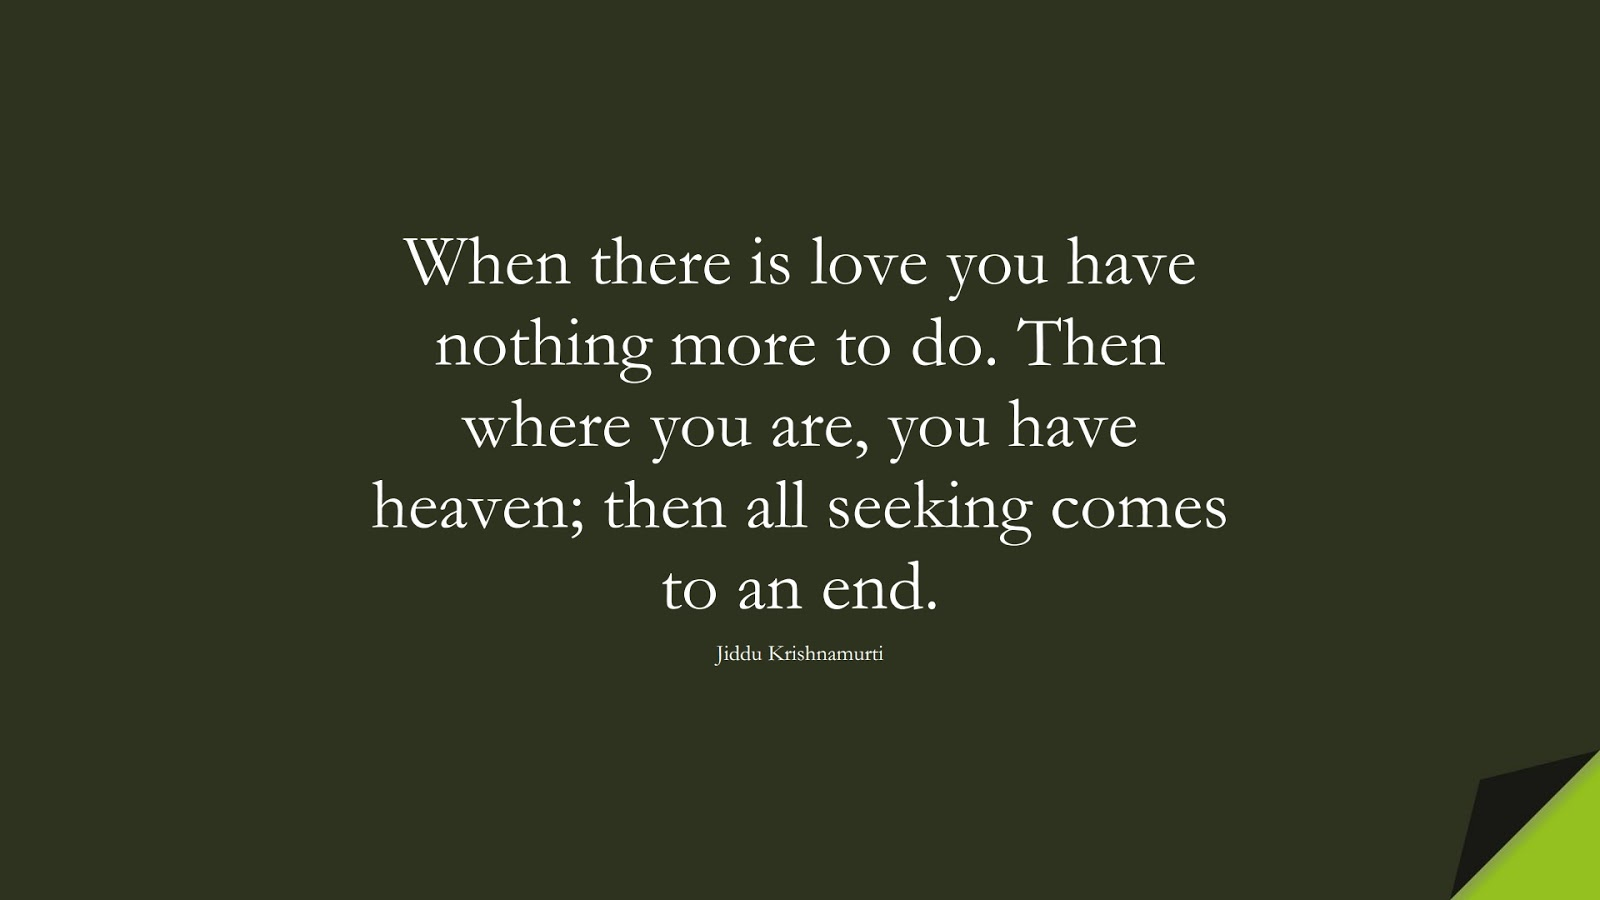 When there is love you have nothing more to do. Then where you are, you have heaven; then all seeking comes to an end. (Jiddu Krishnamurti);  #LoveQuotes